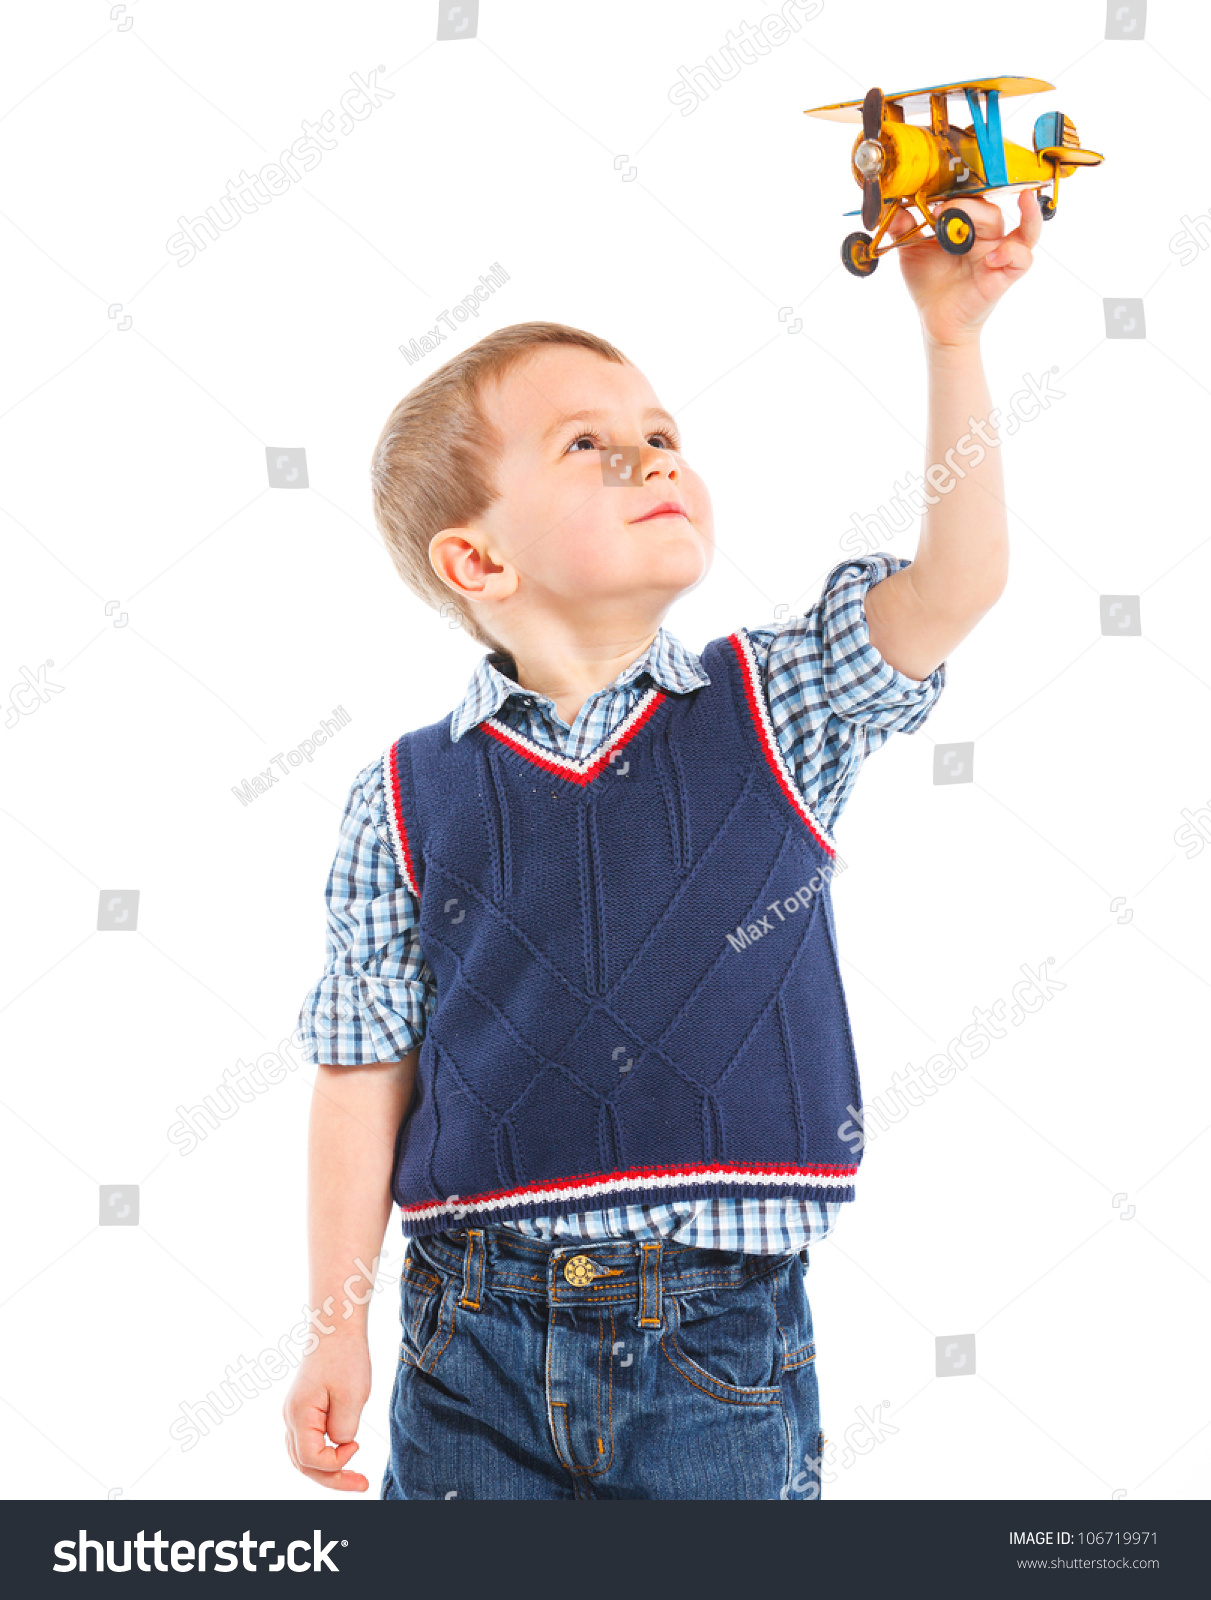 28aaeda9a94 Cute little boy playing with a toy airplane. Isolated on white background